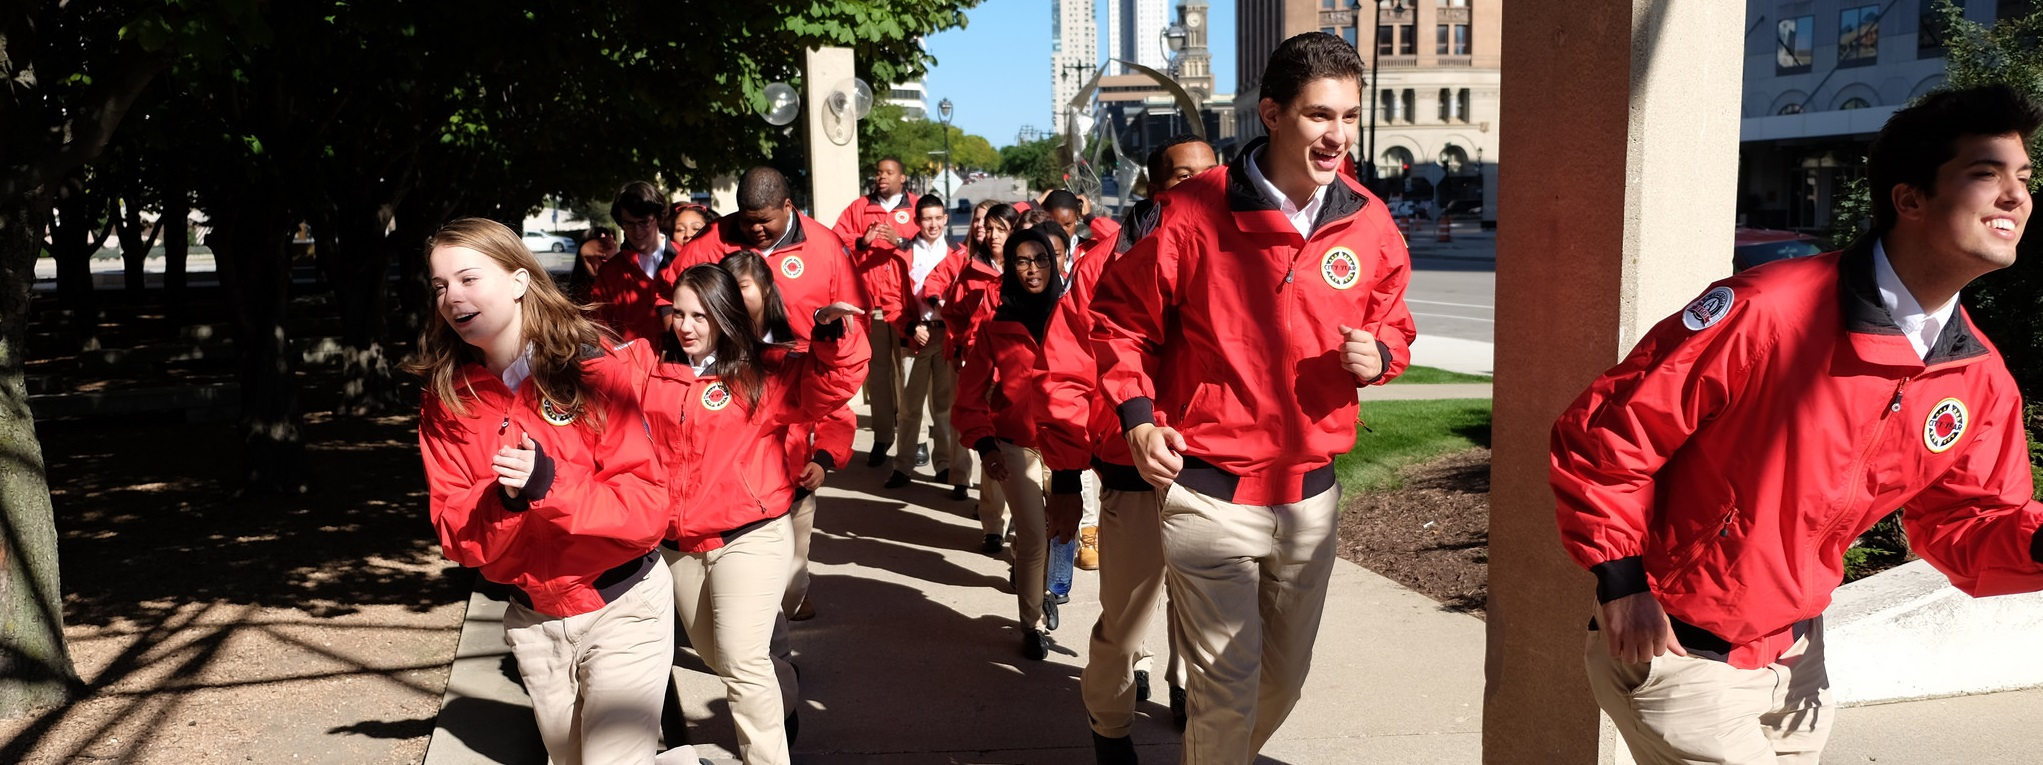 City Year Milwaukee AmeriCorps members entering their swear-in ceremony.